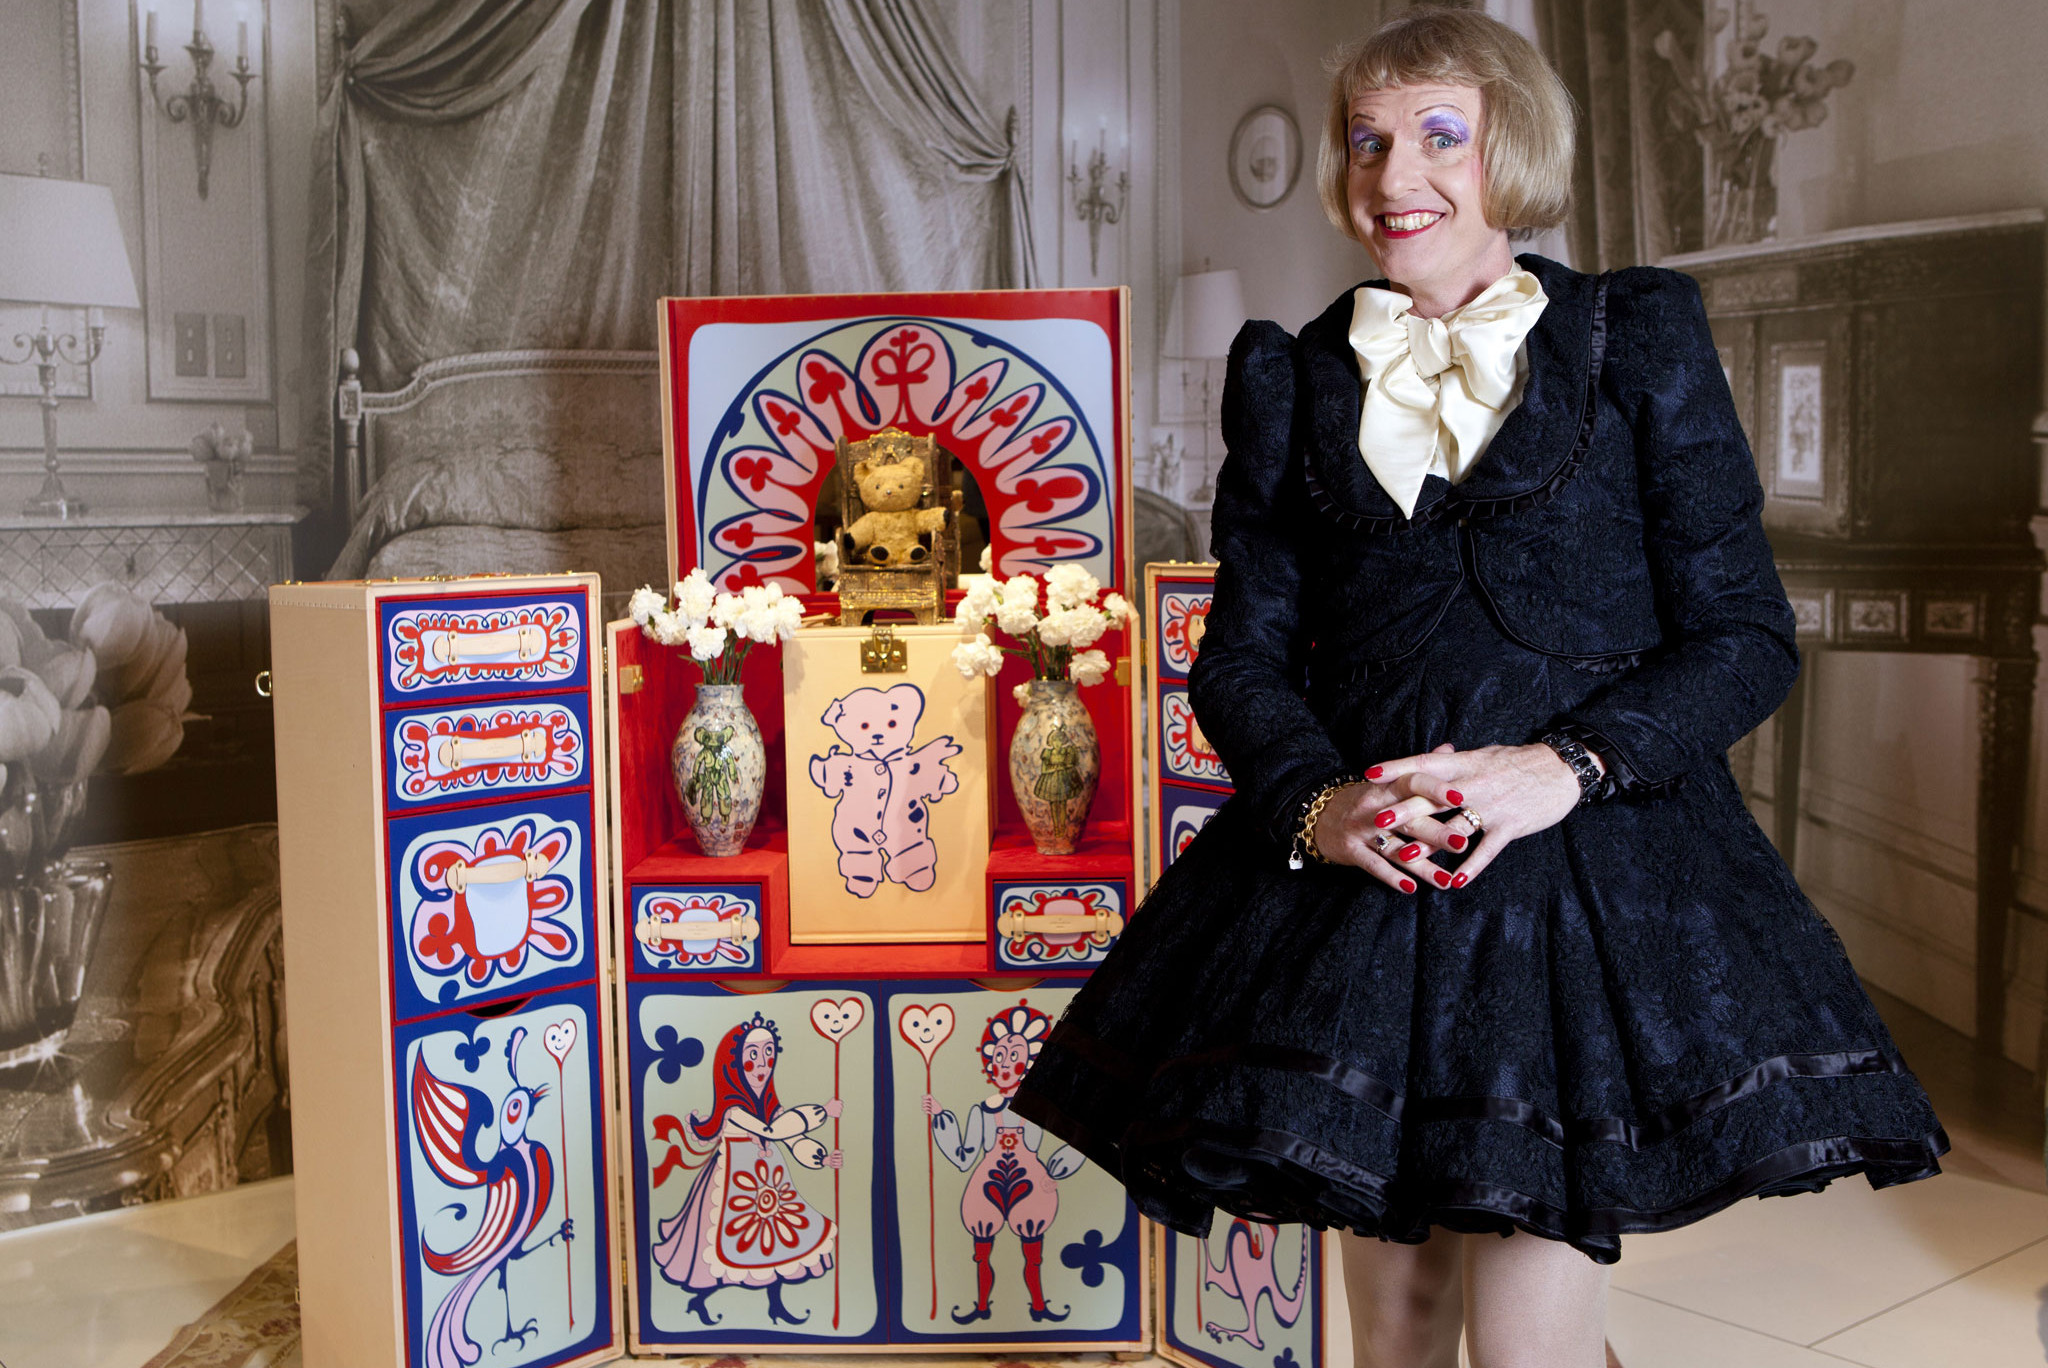 Grayson Perry Plays Hide and Seek in York